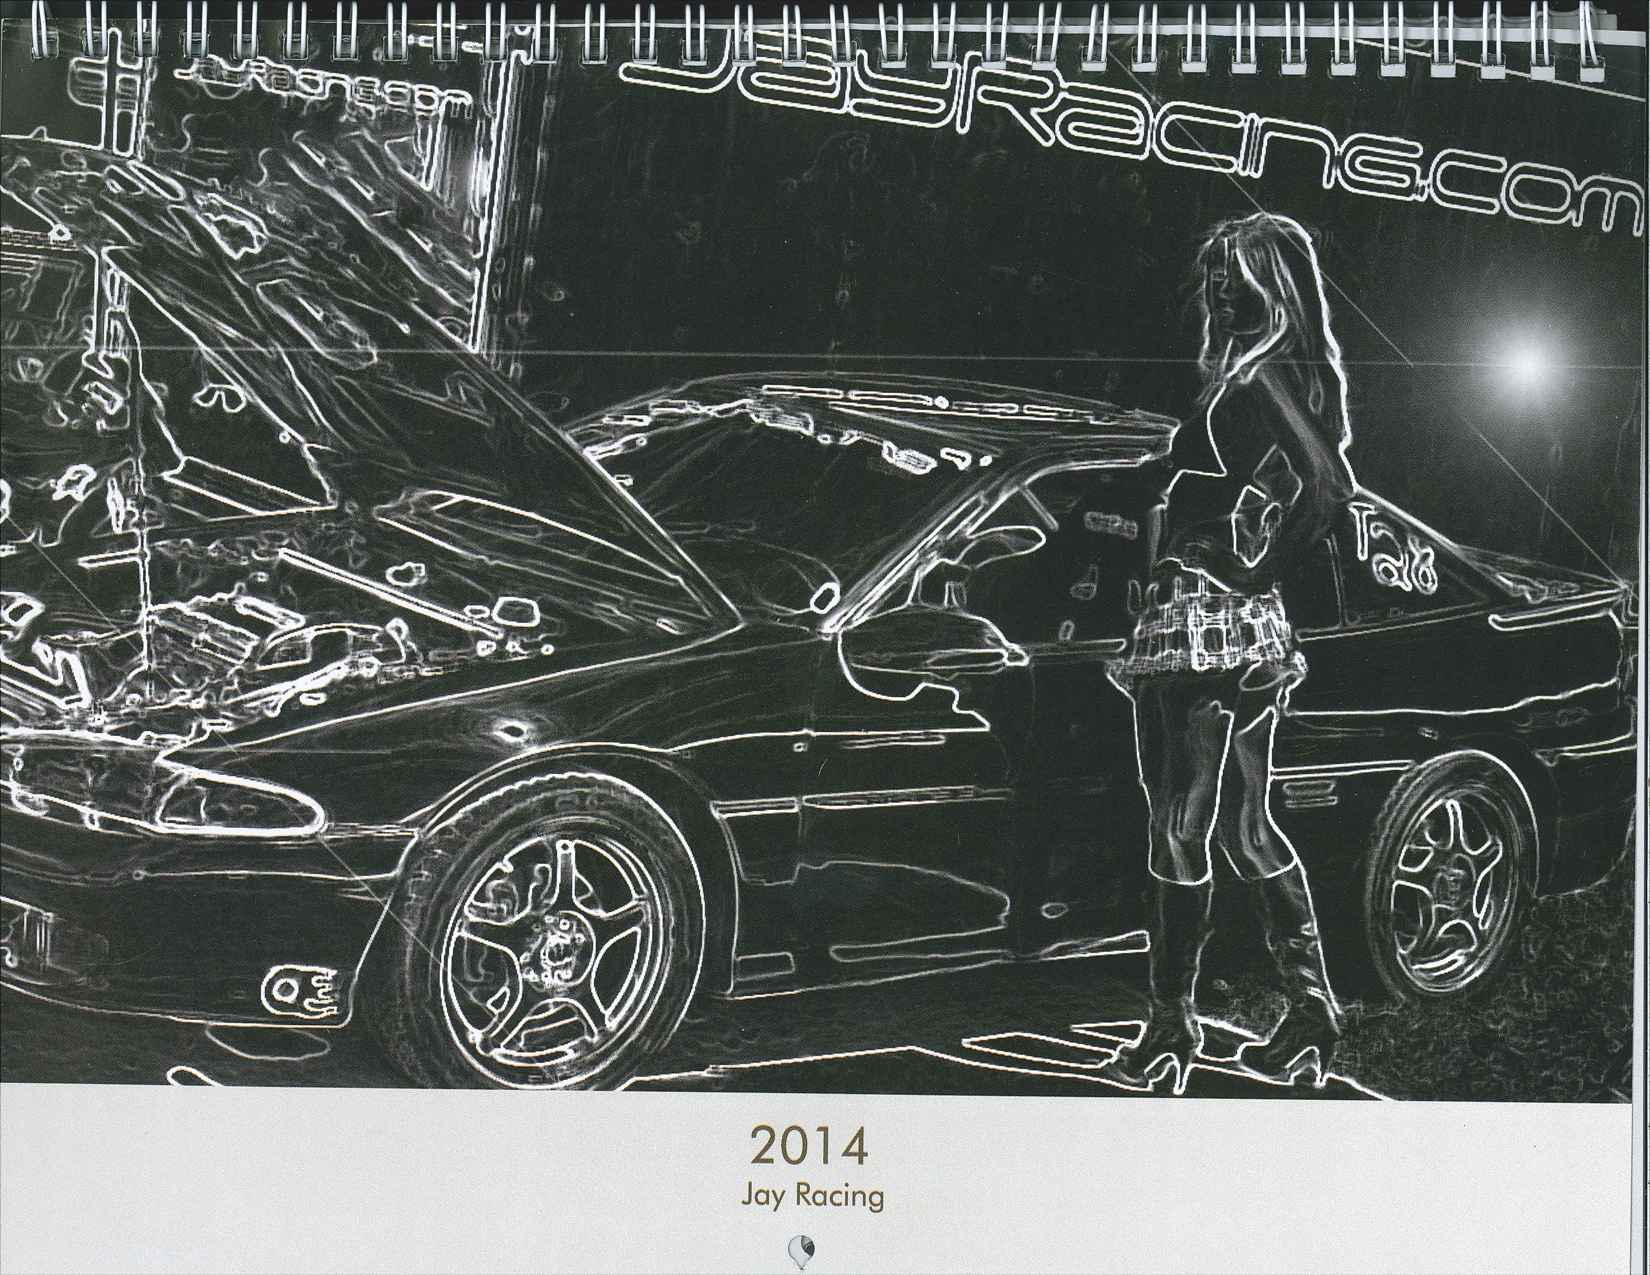 2014 Jay Racing Calendar DIY